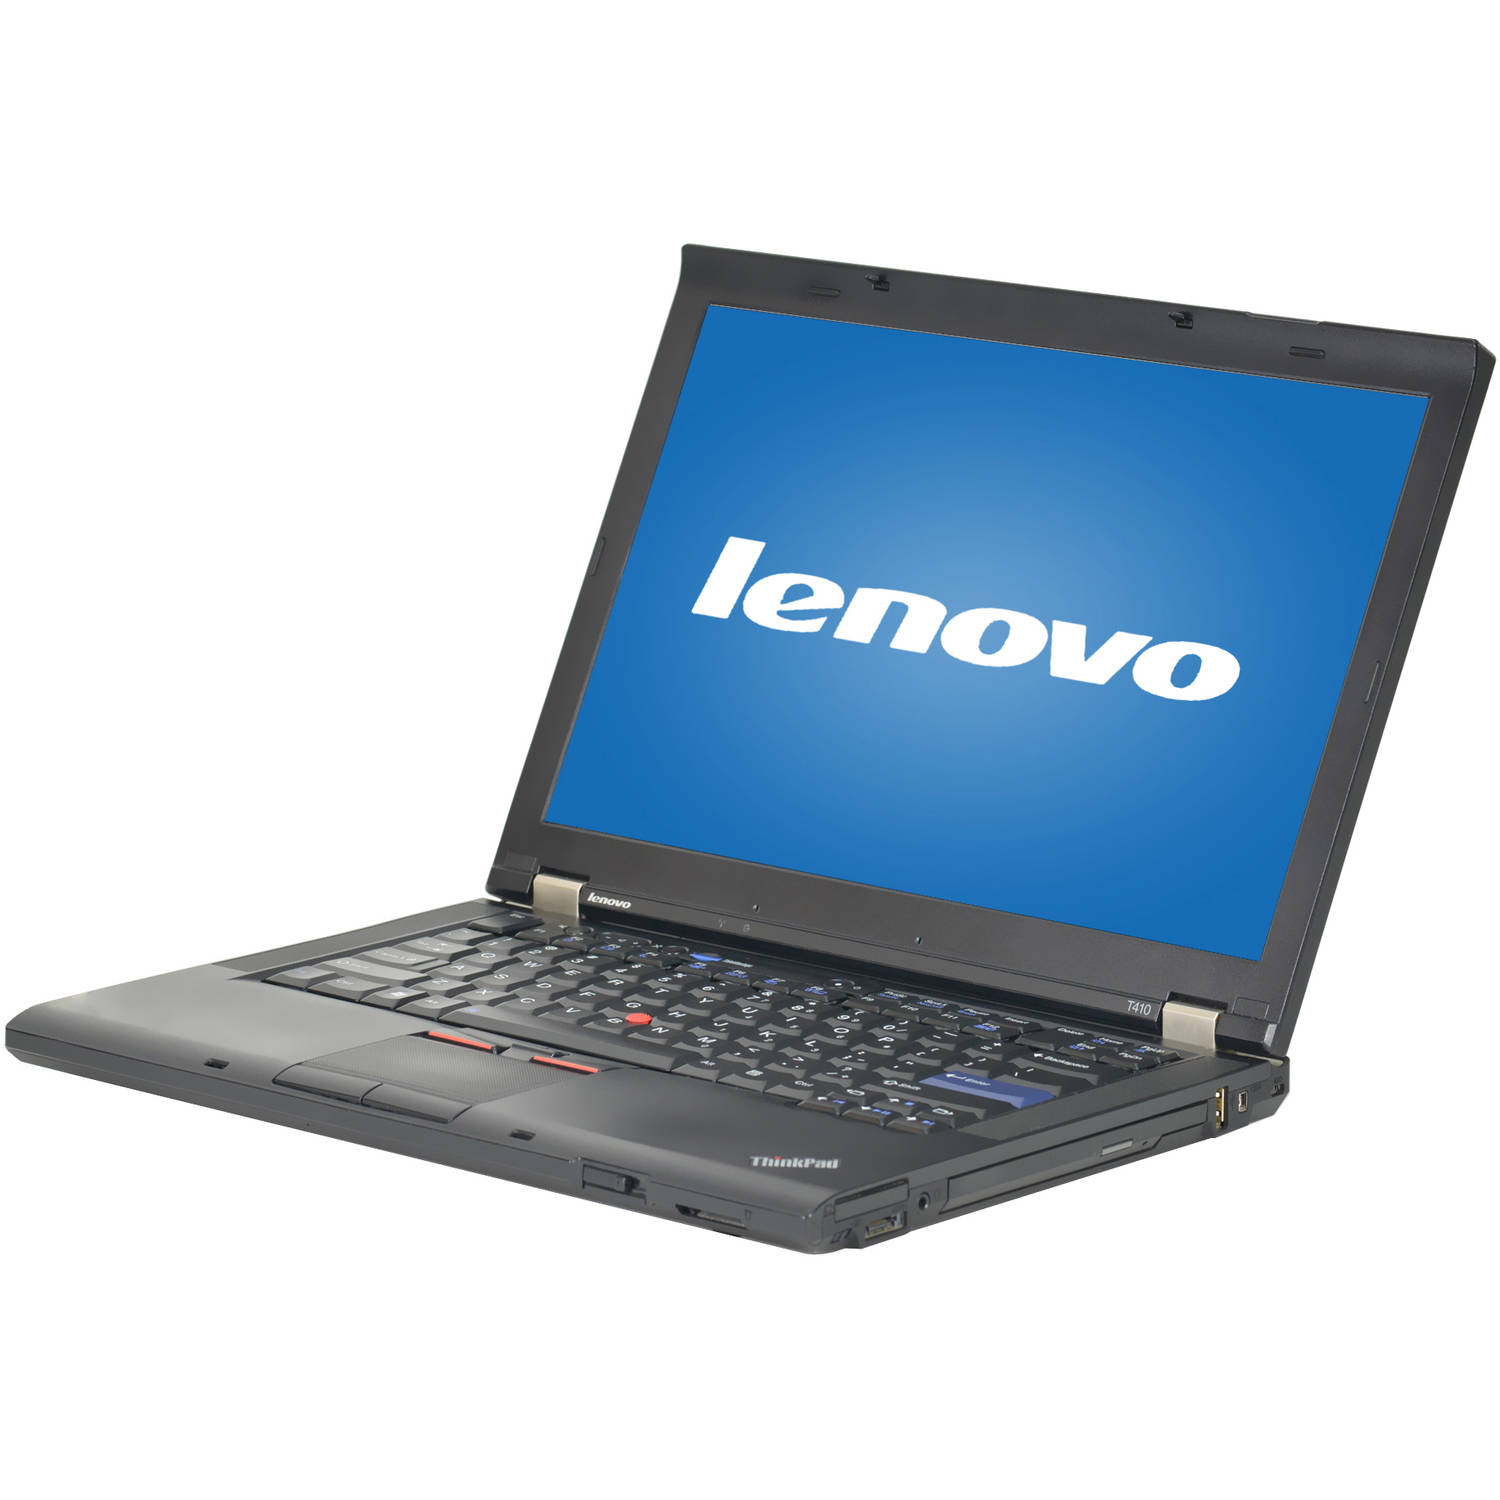 "Refurbished Lenovo Gray 14.1"" T410 Laptop PC with Intel Core i5-520M Processor, 4GB Memory, 320GB Hard Drive and Windows 10 Pro"